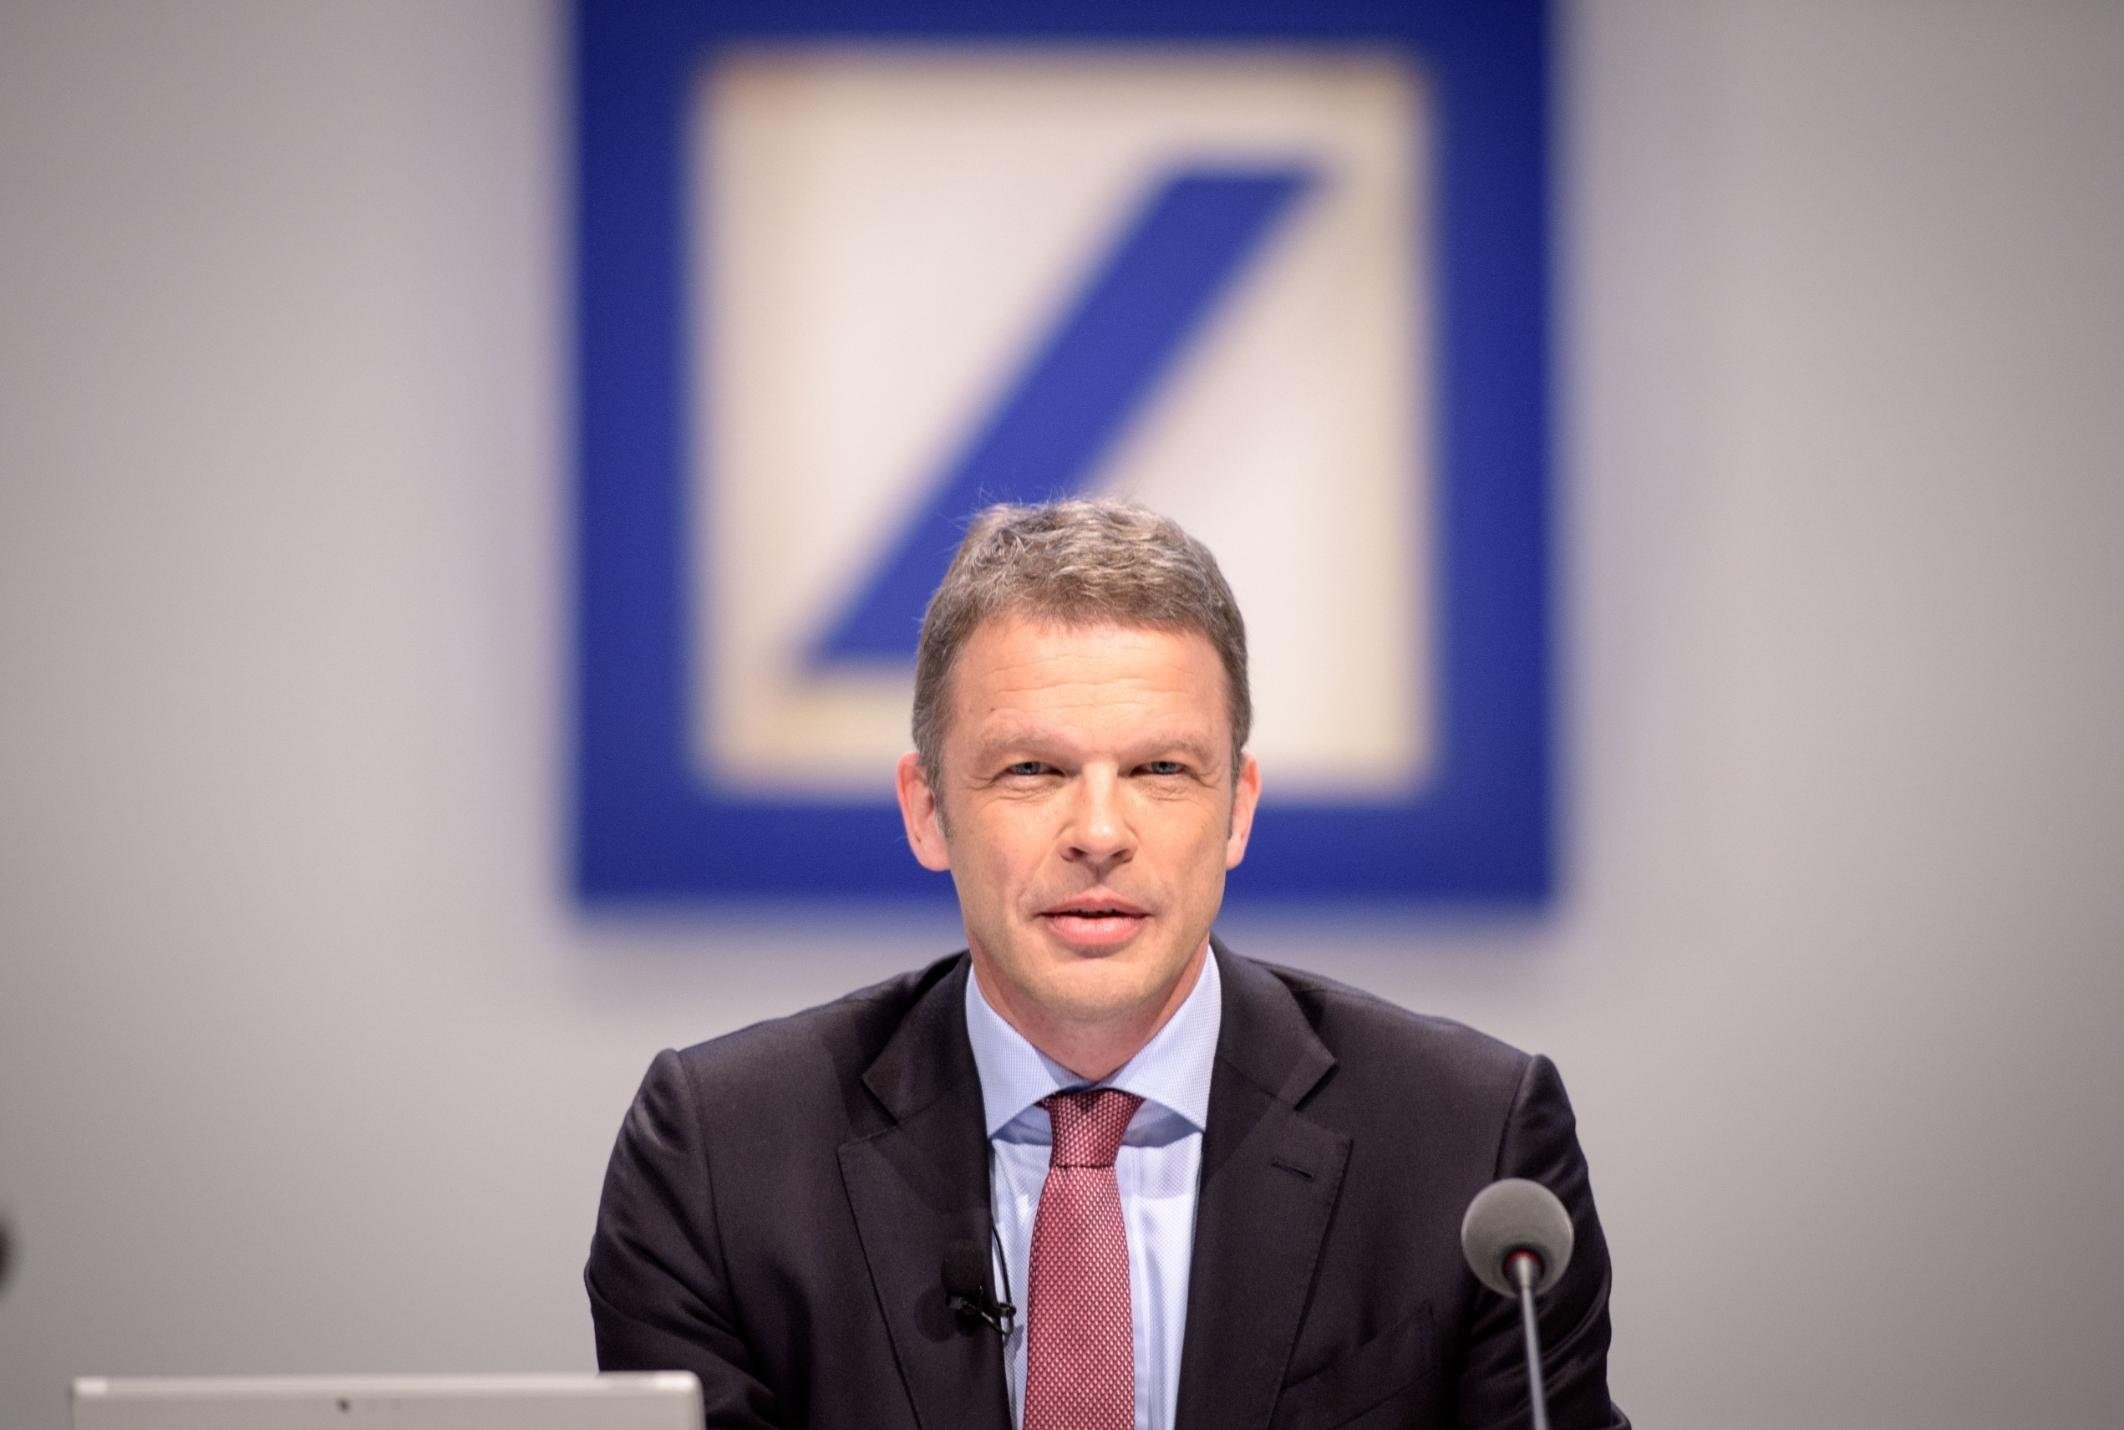 Germany's Deutsche Bank sees higher-than-expected Q2 profit